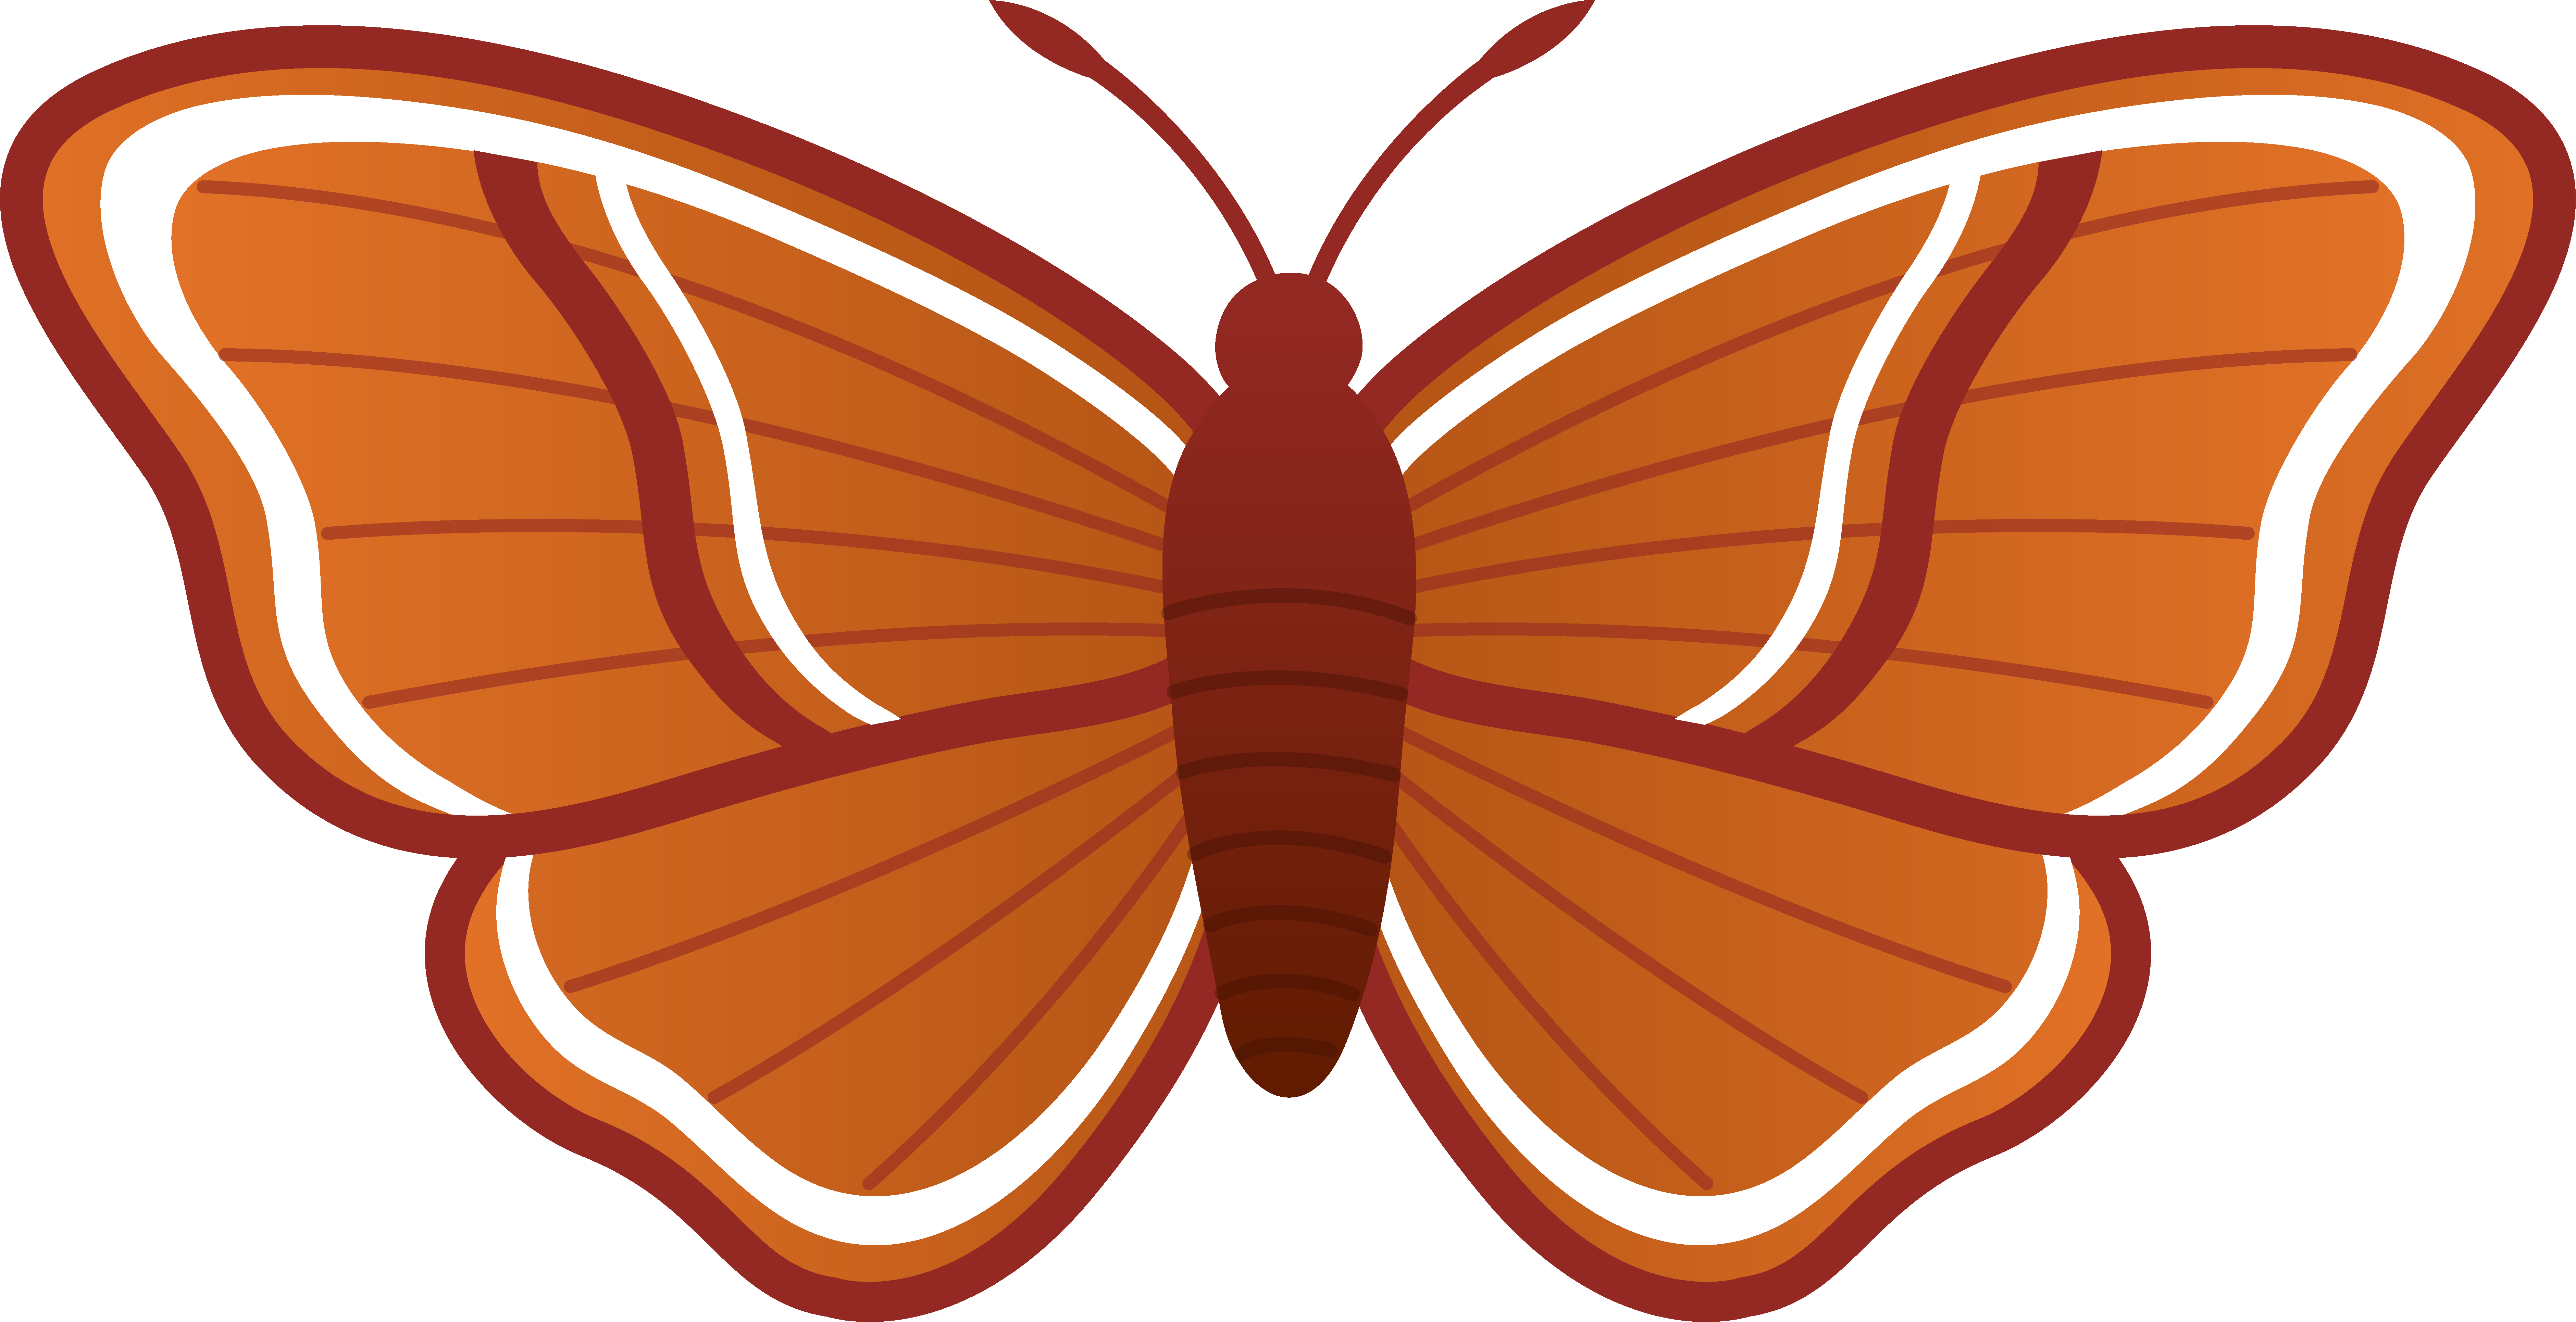 Swift Moth clipart #3, Download drawings